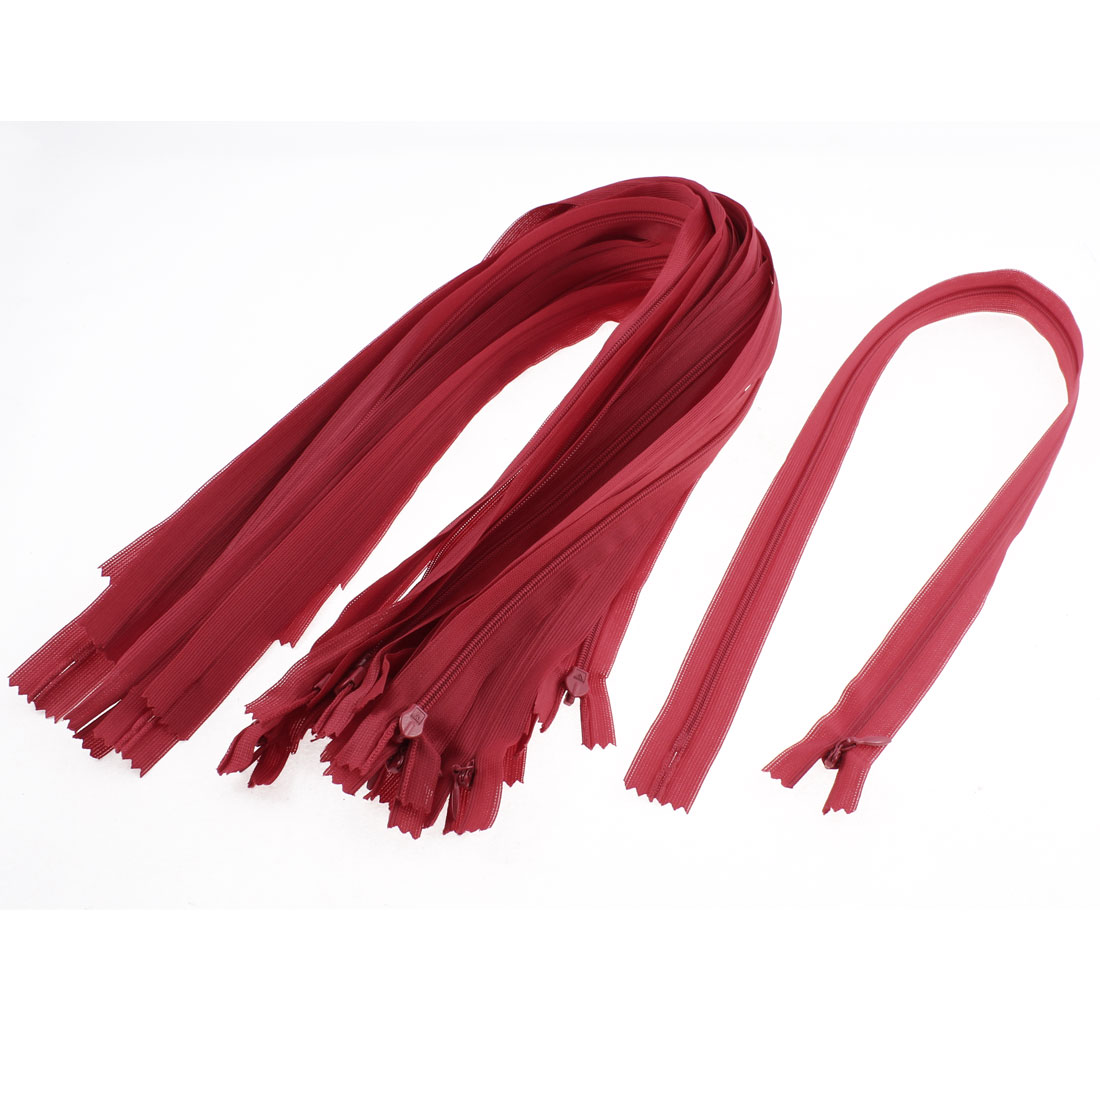 Dress Pants Closed End Nylon Zippers Tailor Sewing Craft Tool Red 55cm 20 Pcs